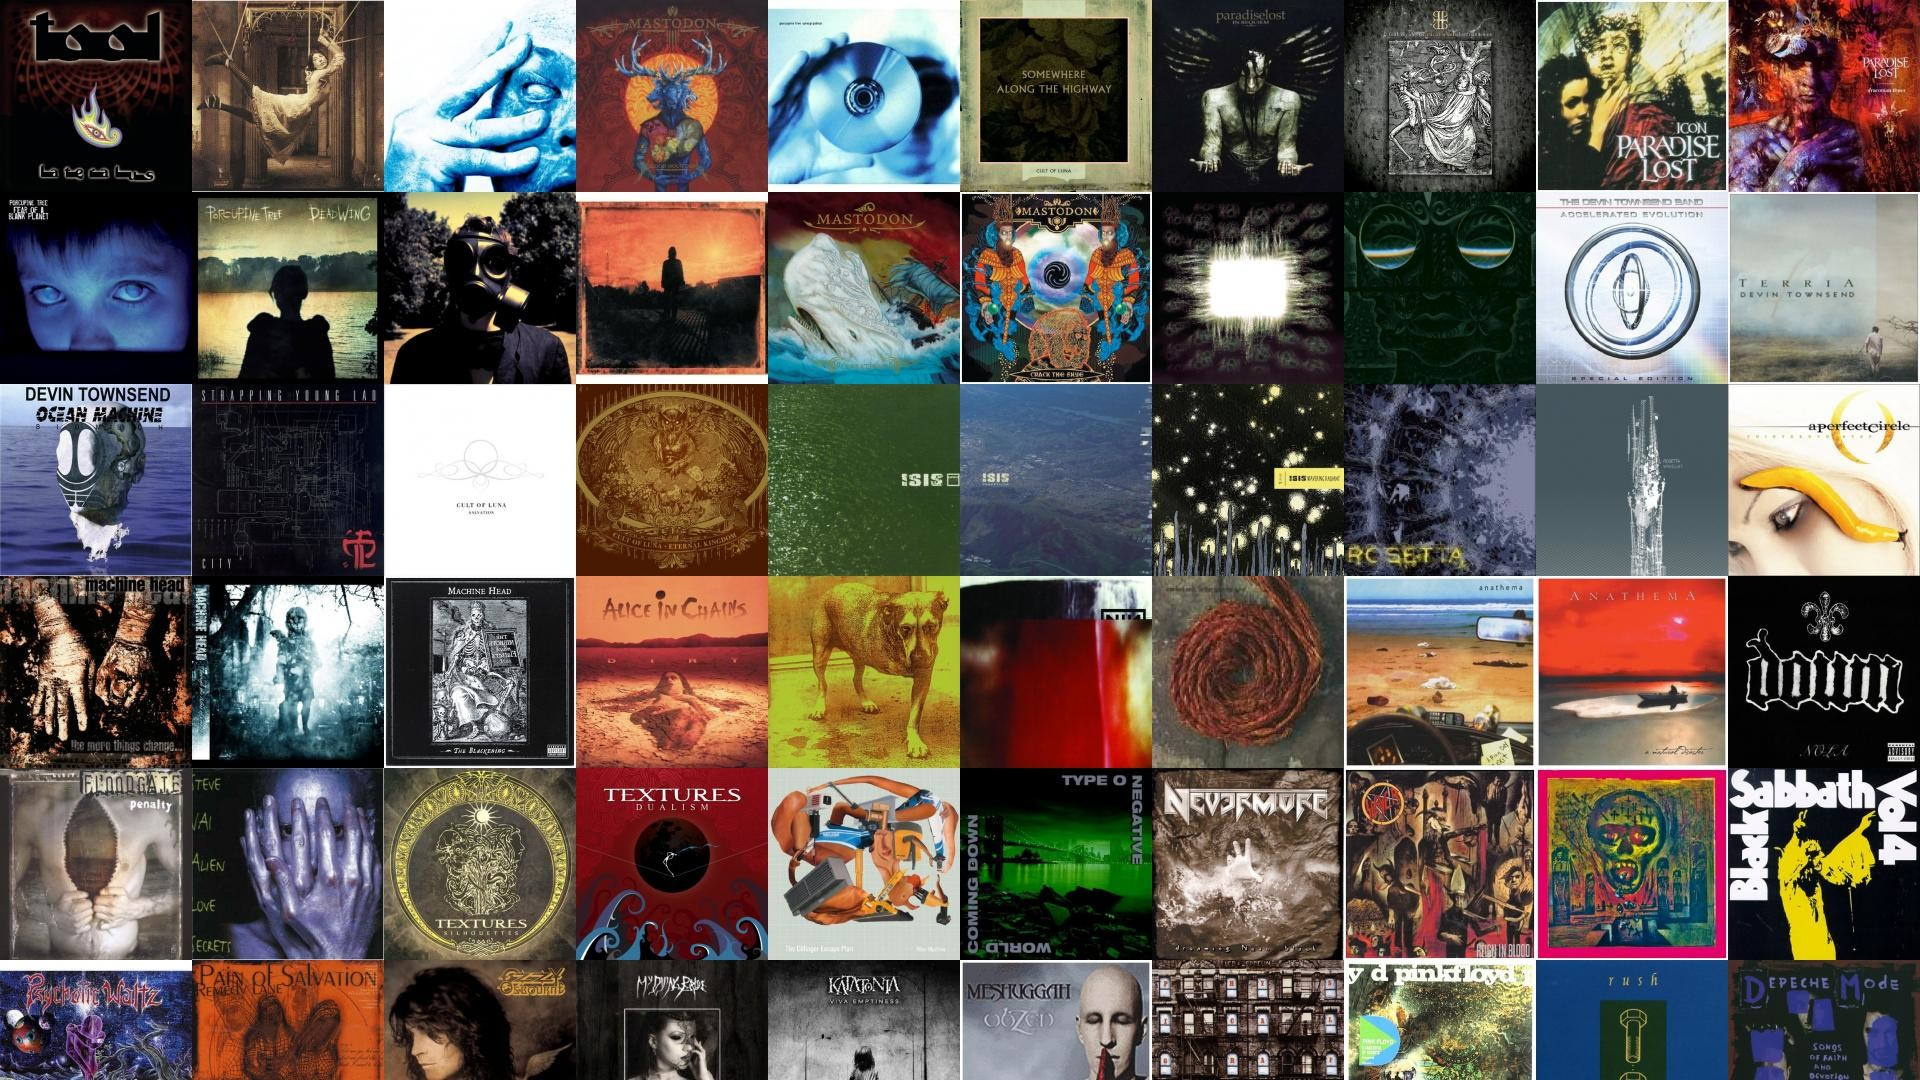 Tool Lateralus Porcupine Tree Signify In Absentia Mastodon Wallpaper